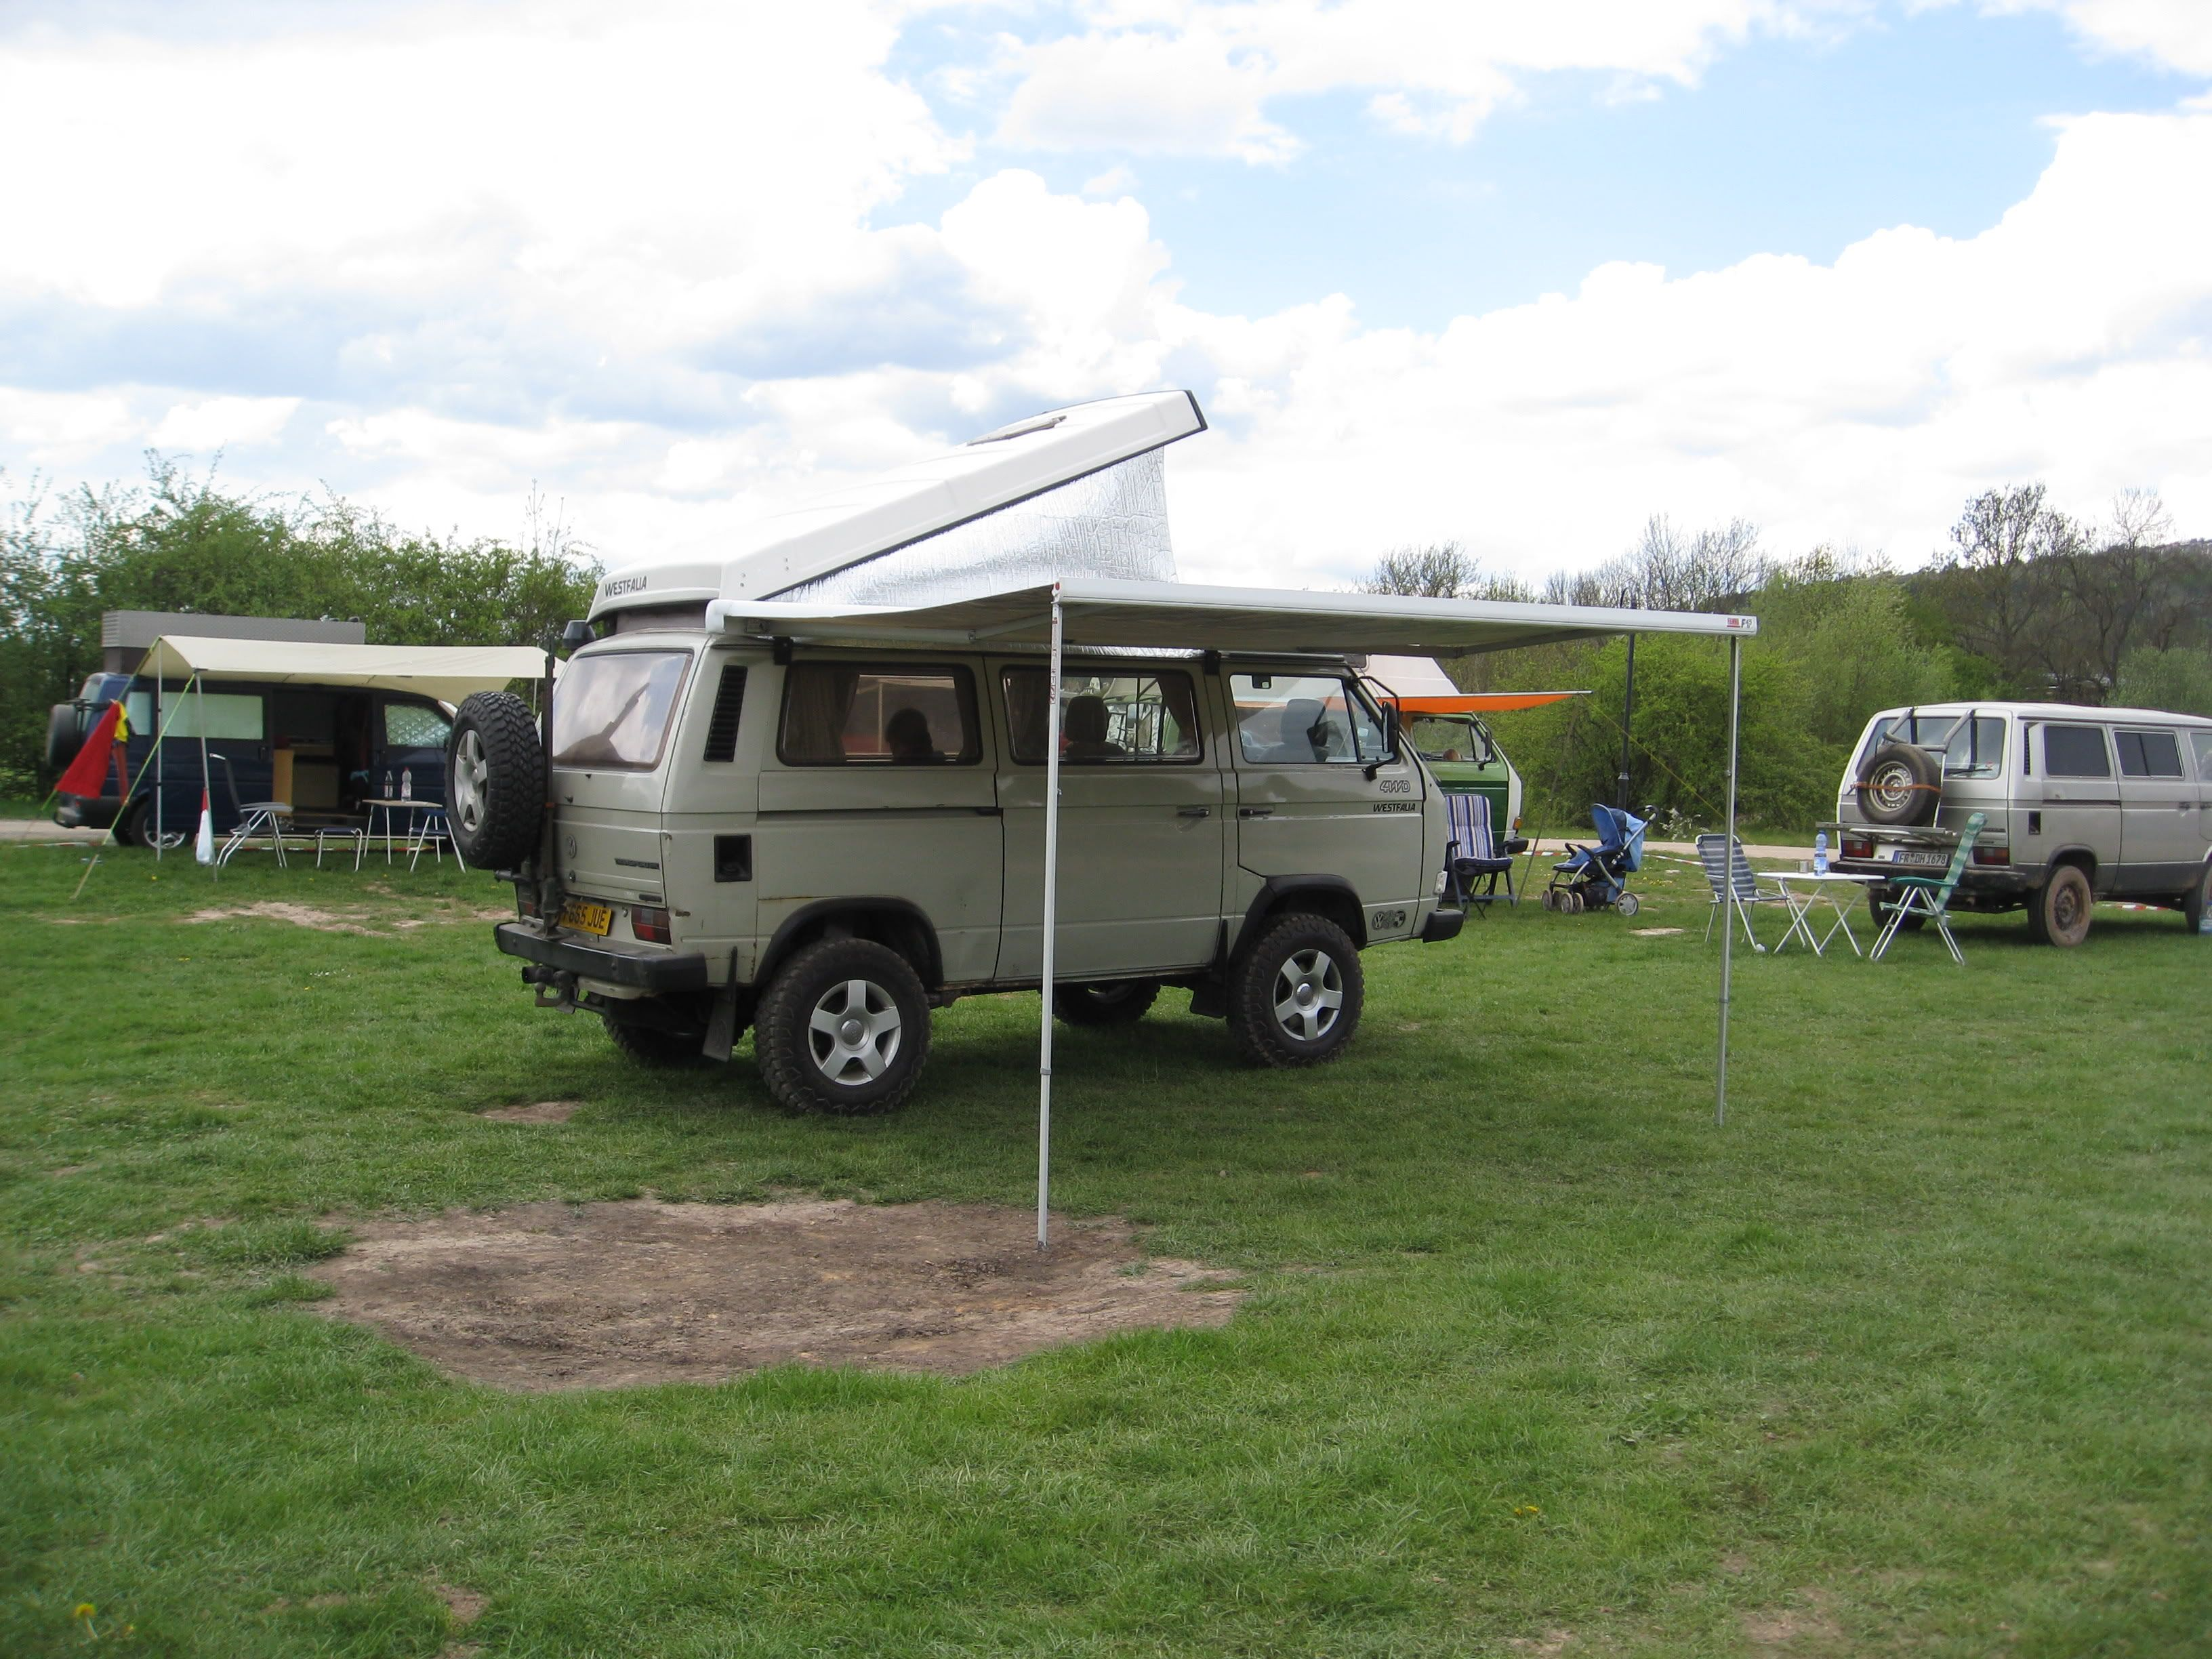 Here's Limey parked up with the latest aquisition, a 3.5 meter Fiamma F45i. I need to buy another bracket to keep it steady as mentioned ear...